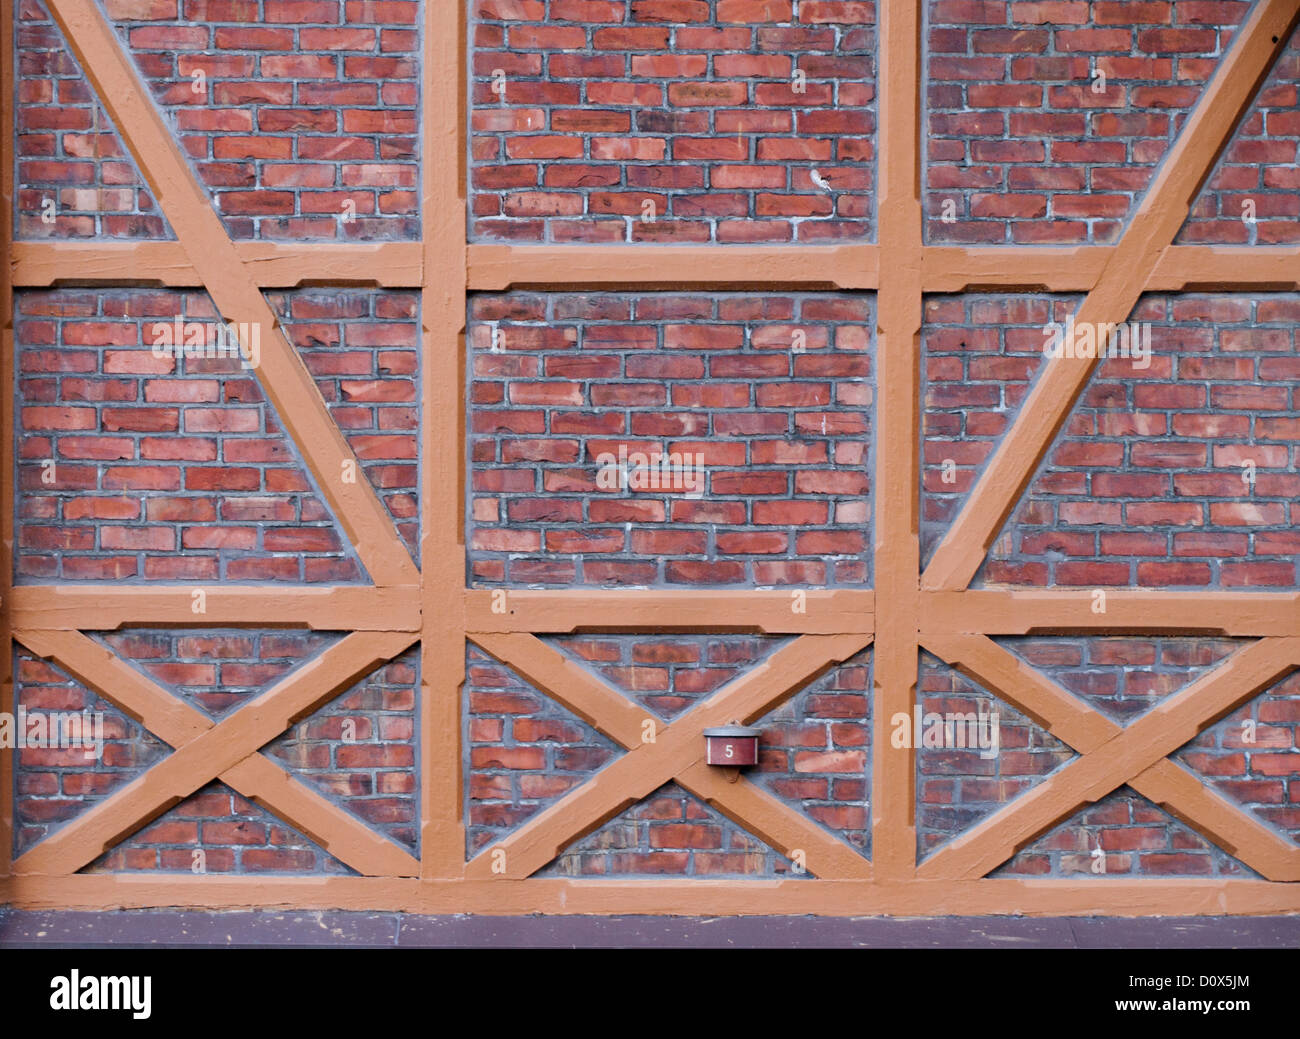 Timber framing also called post-and-beam construction makes beautiful patterns when photographed close up, here - Stock Image